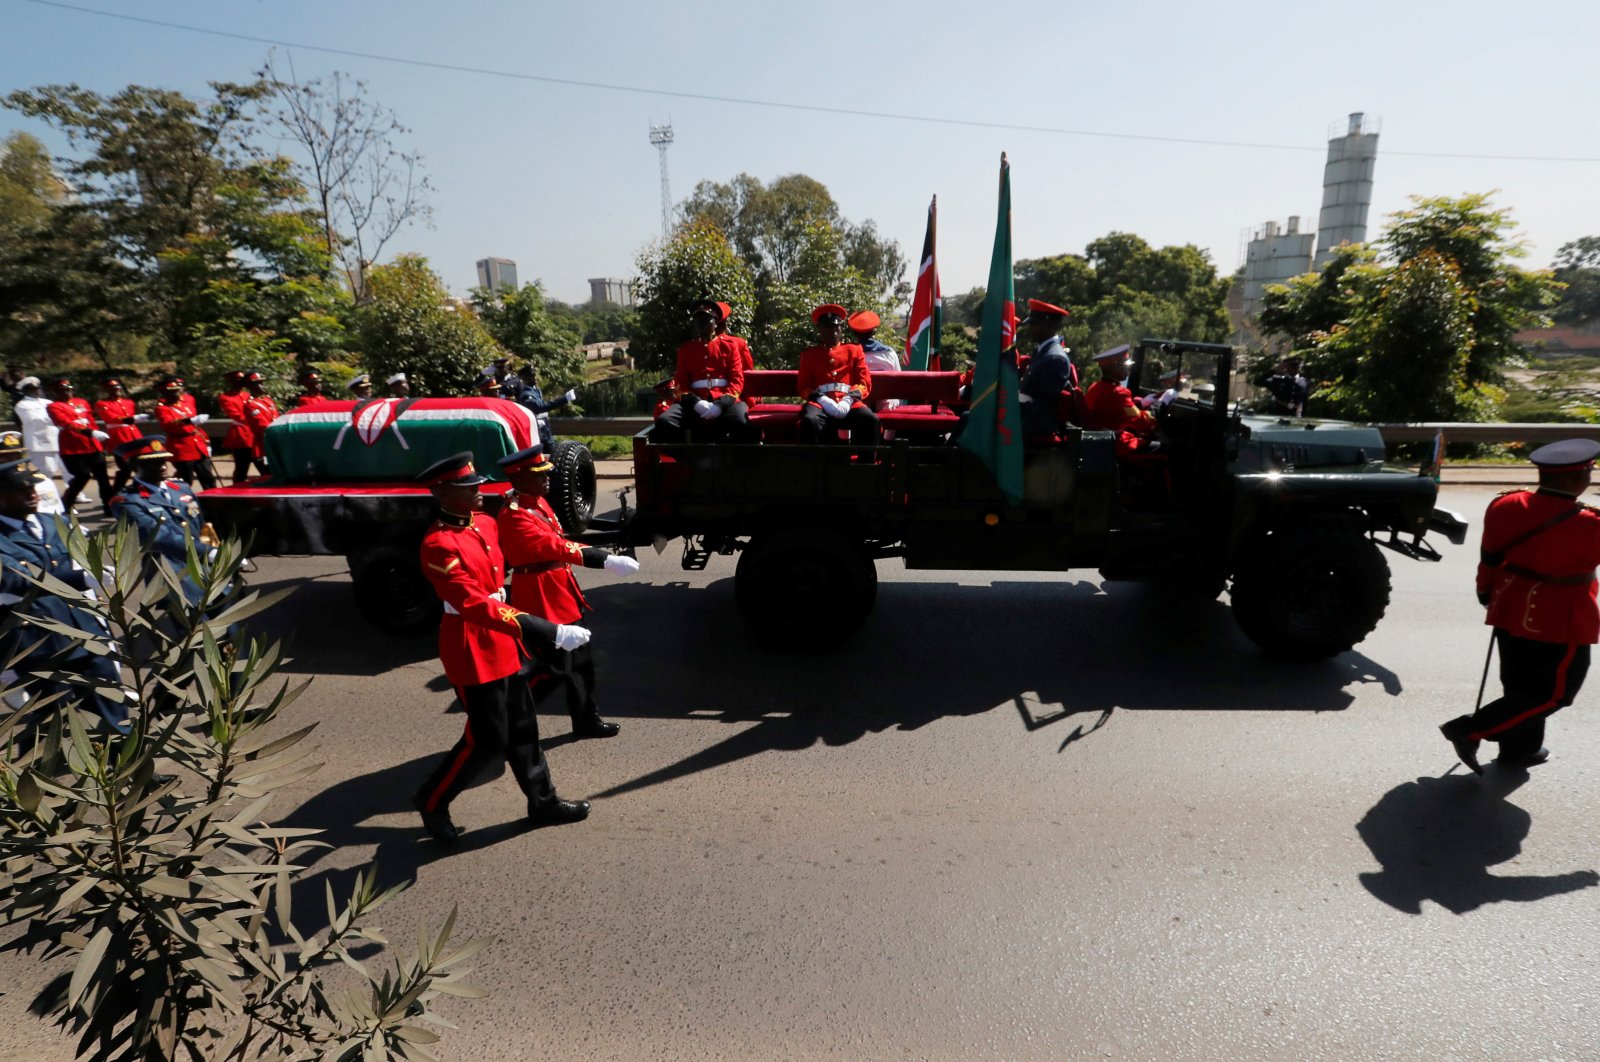 Military officers escort a gun carriage carrying the coffin of late President Daniel Arap Moi during a state funeral procession to Nyayo National Stadium, the venue of the national memorial service, Nairobi, Kenya, Feb. 11, 2020. (Reuters Photo)